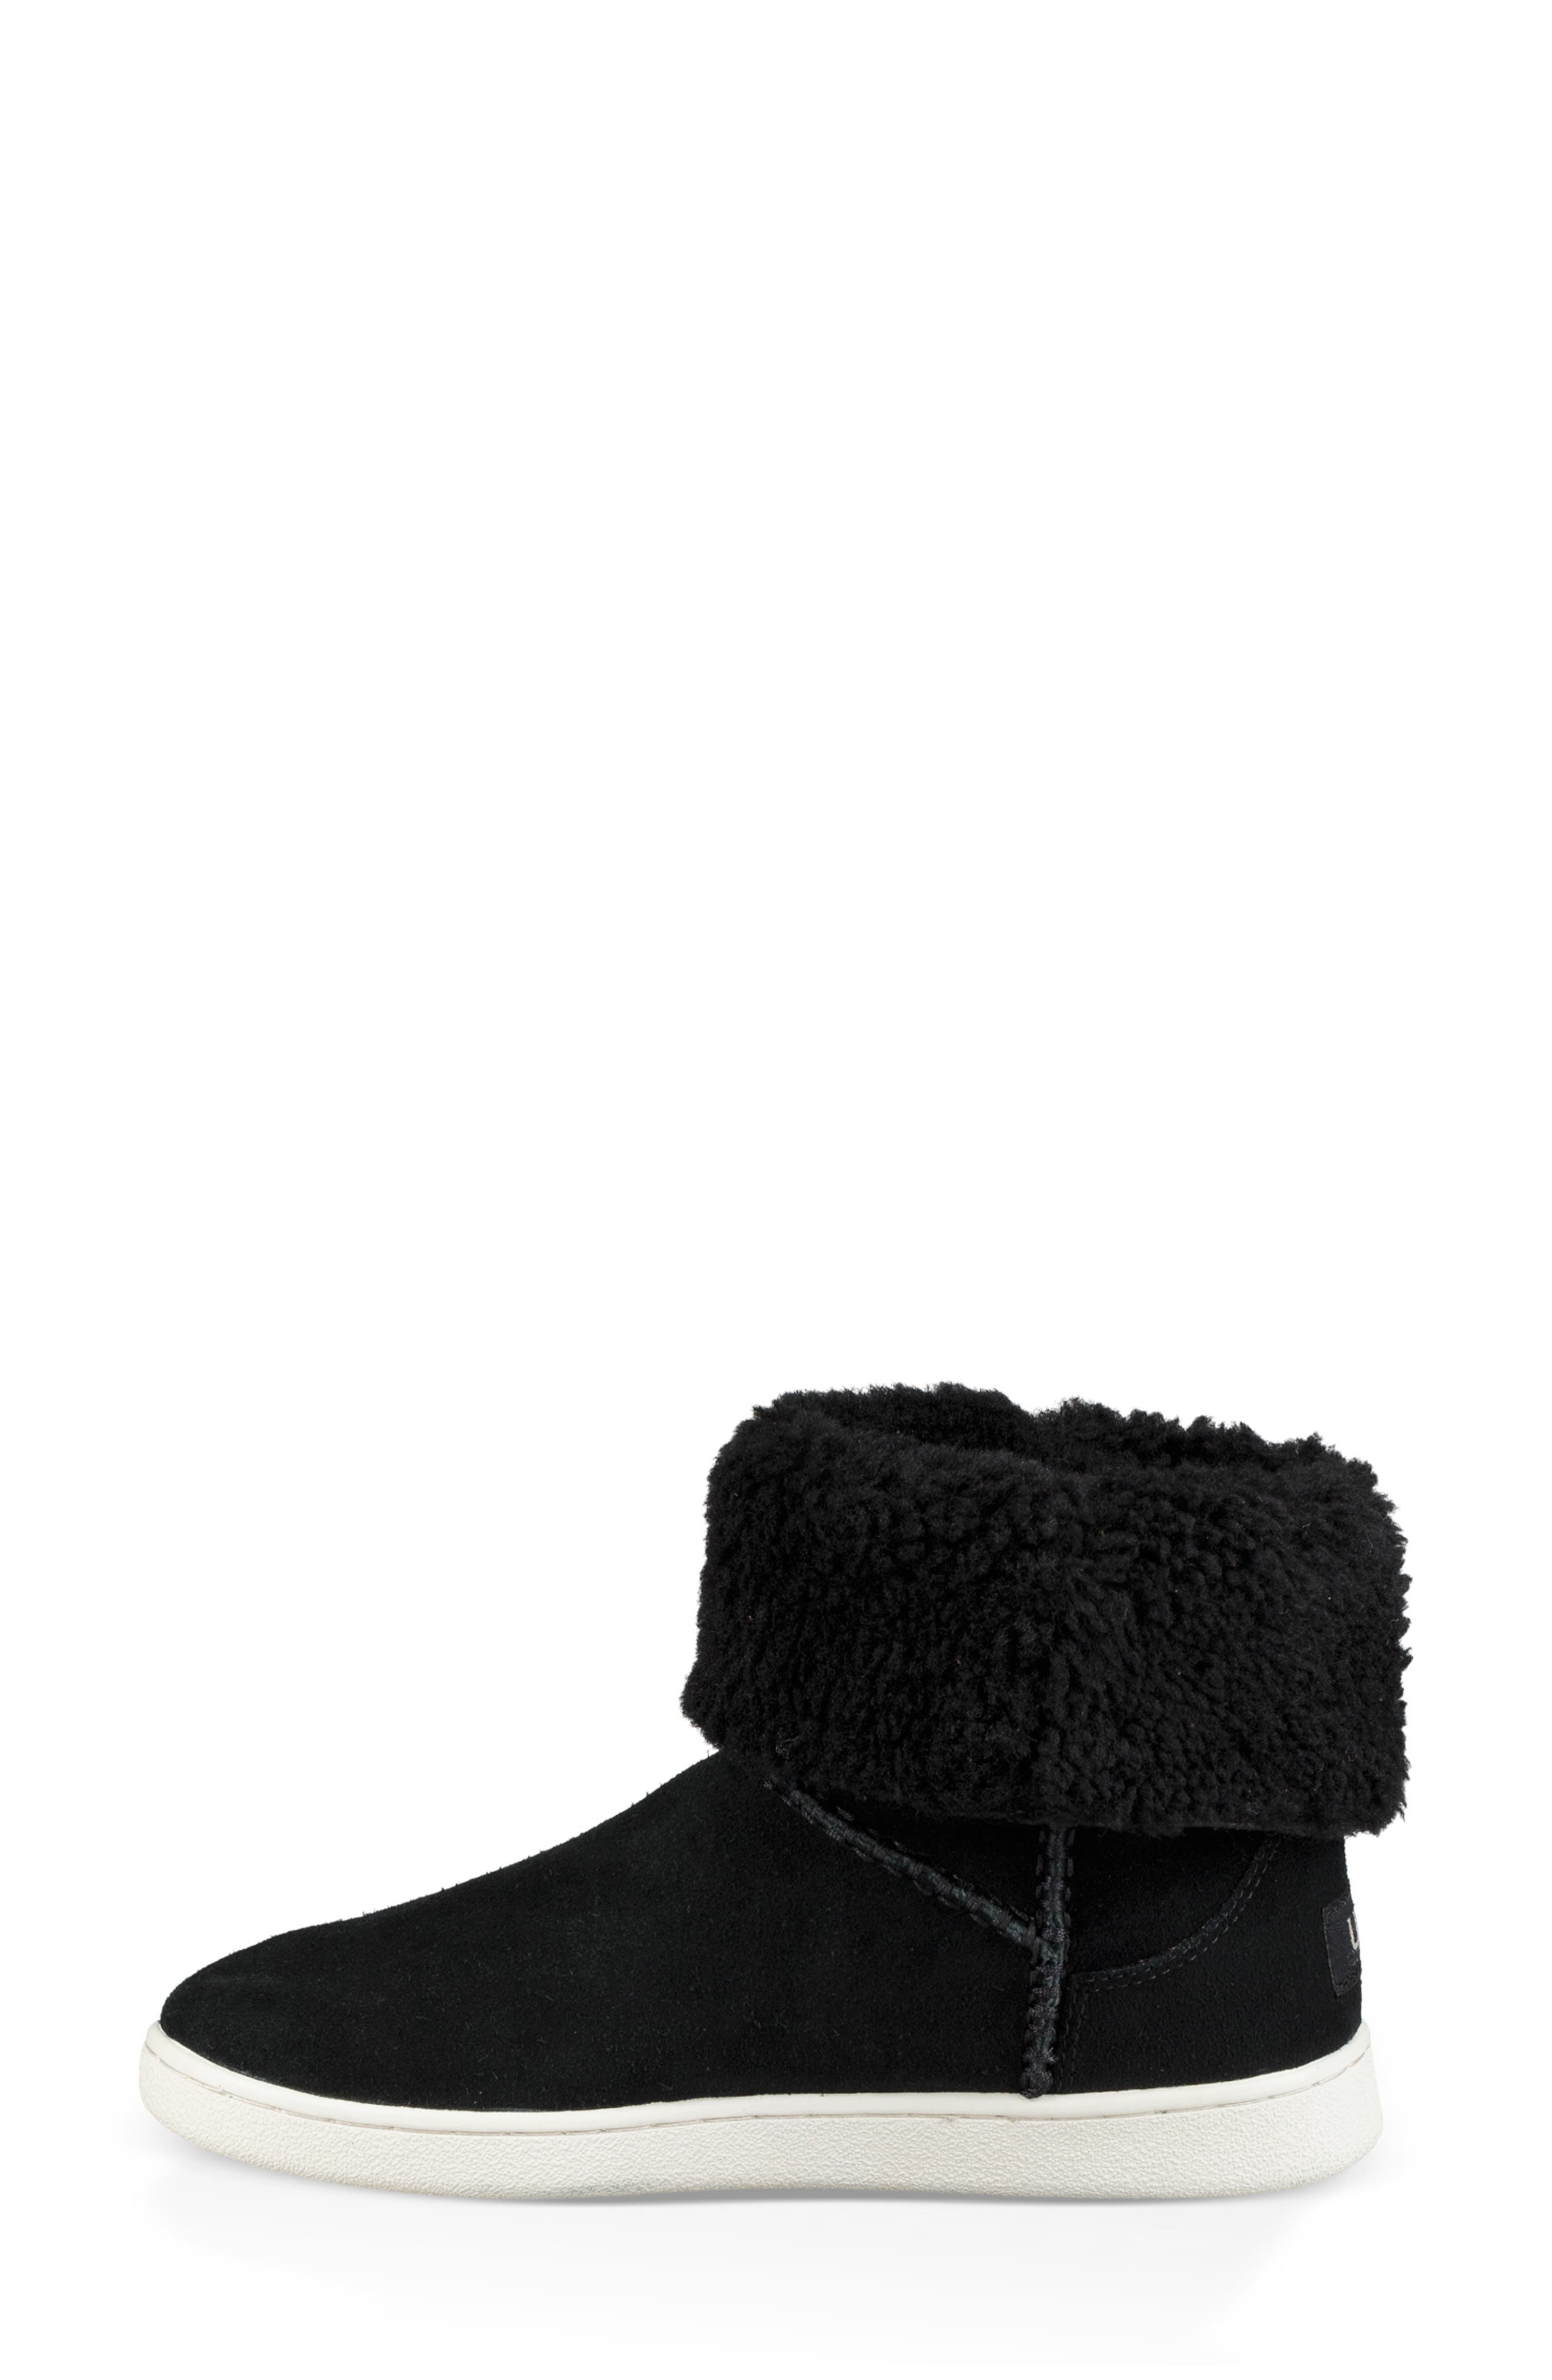 UGG<SUP>®</SUP>, Mika Classic Genuine Shearling Sneaker, Alternate thumbnail 8, color, BLACK